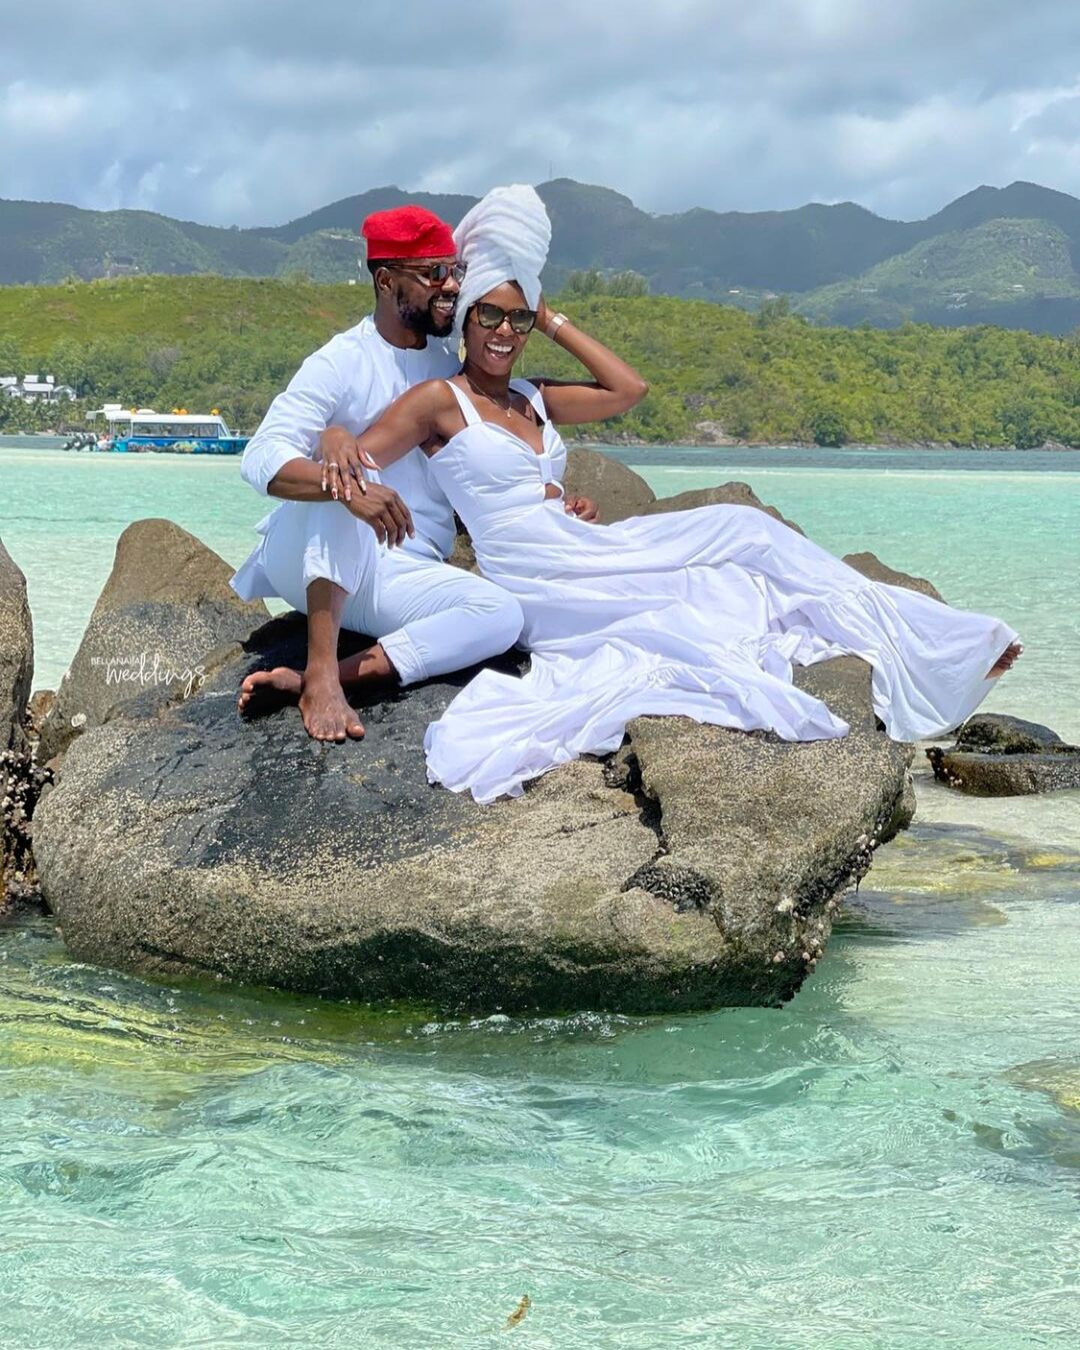 61409179865b0 - Media personality, Debola Williams and wife spend their honeymoon in Seychelles